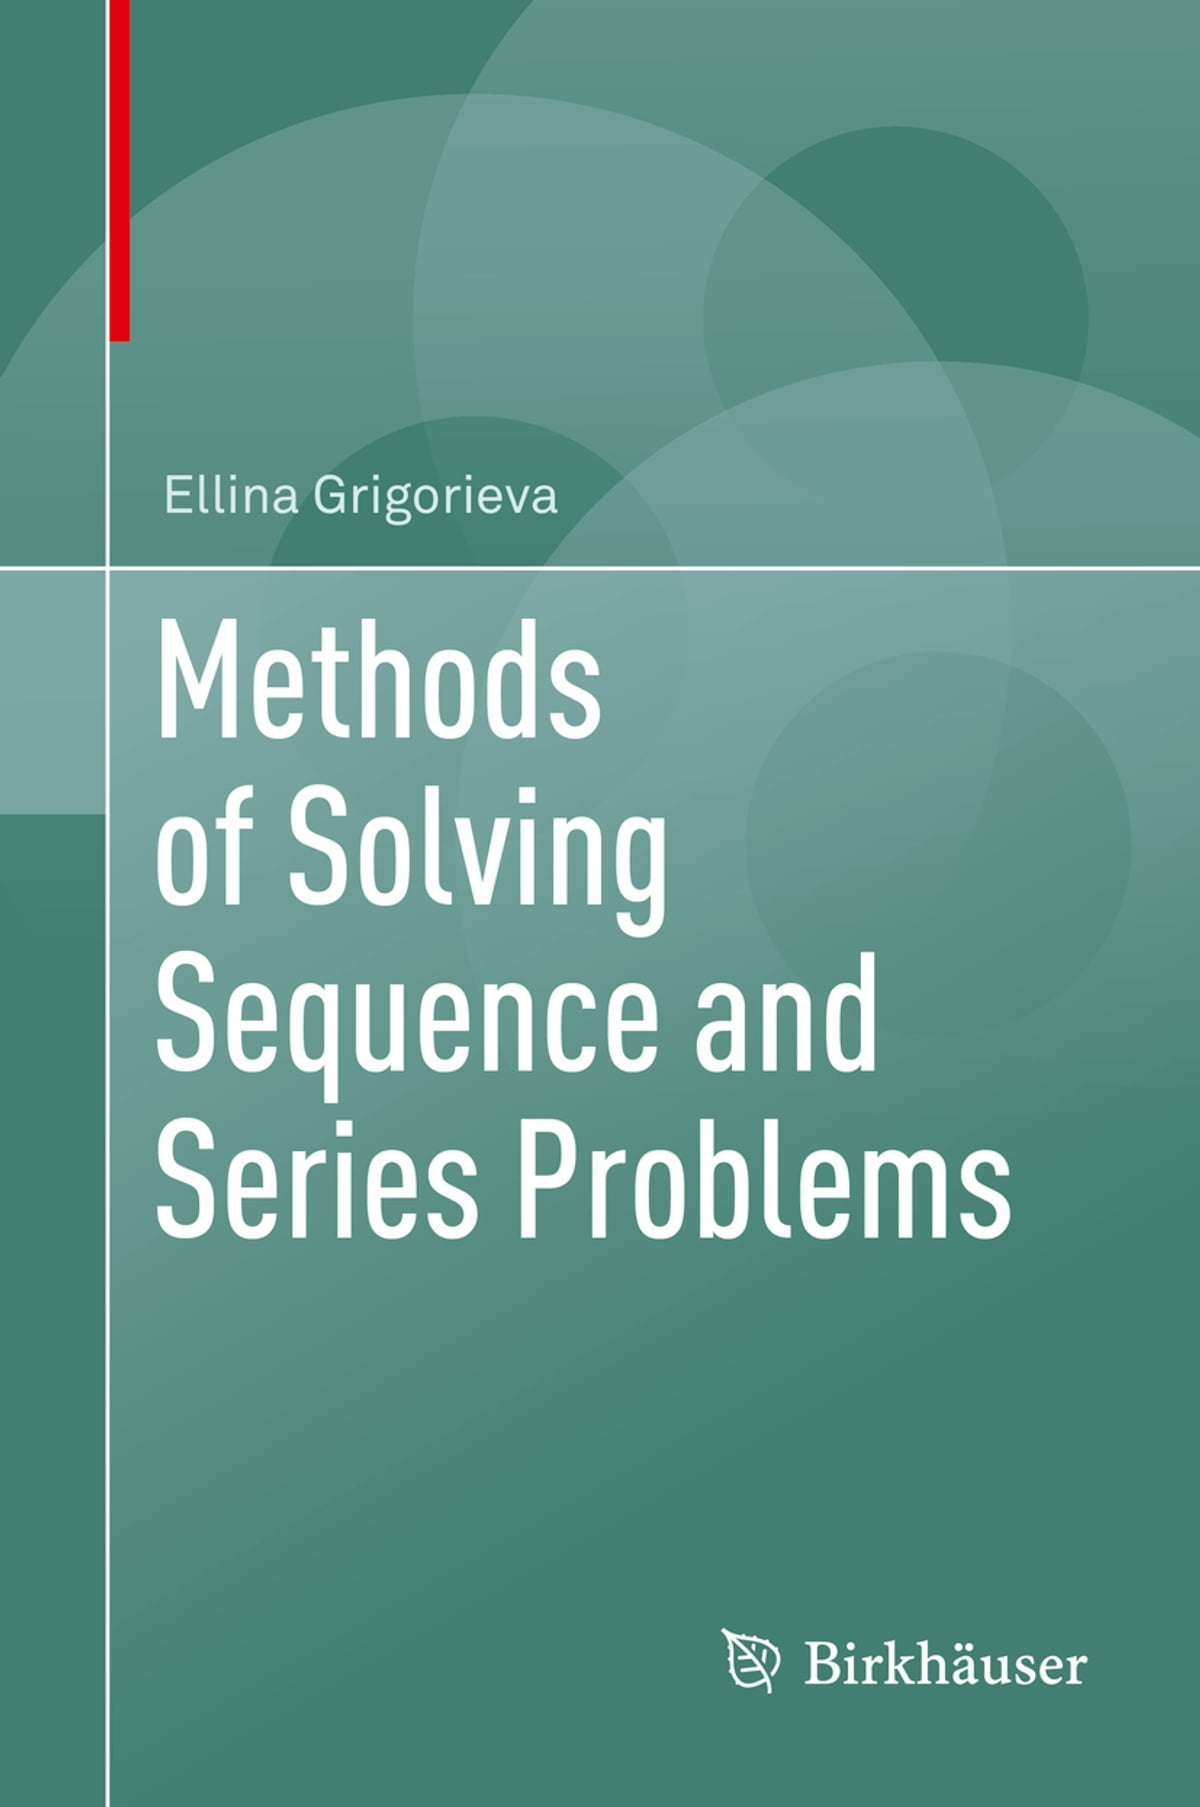 Methods of Solving Sequence and Series Problems eBook by Ellina ...